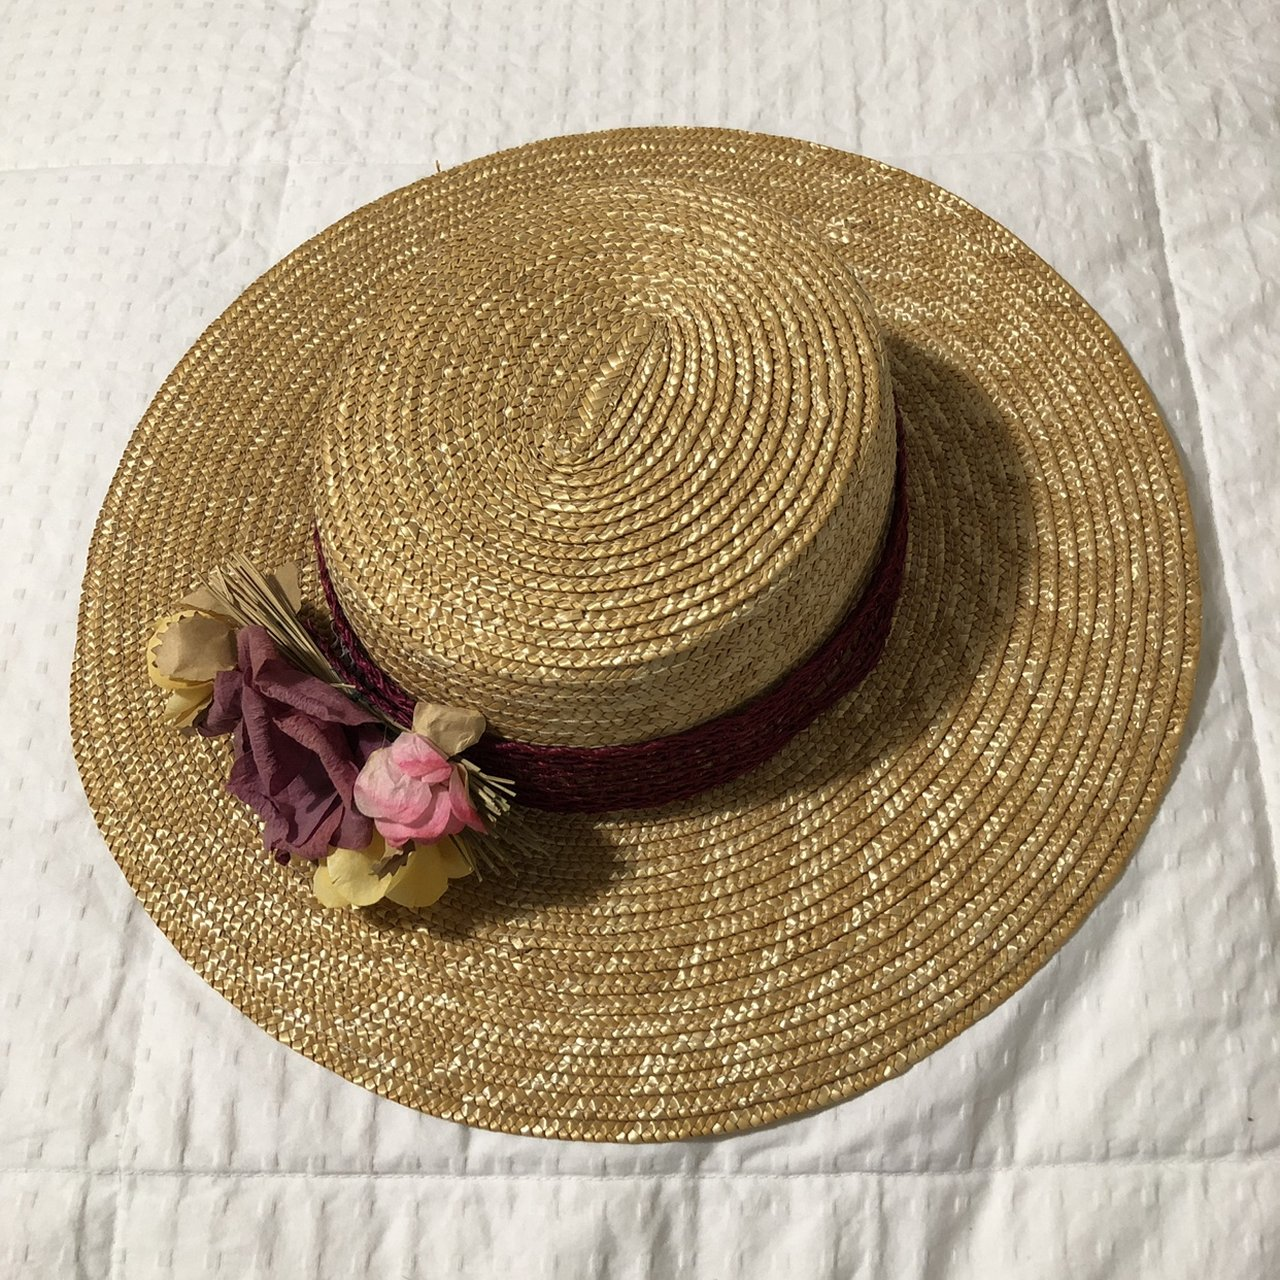 Vintage straw hat with floral cb0054a60272